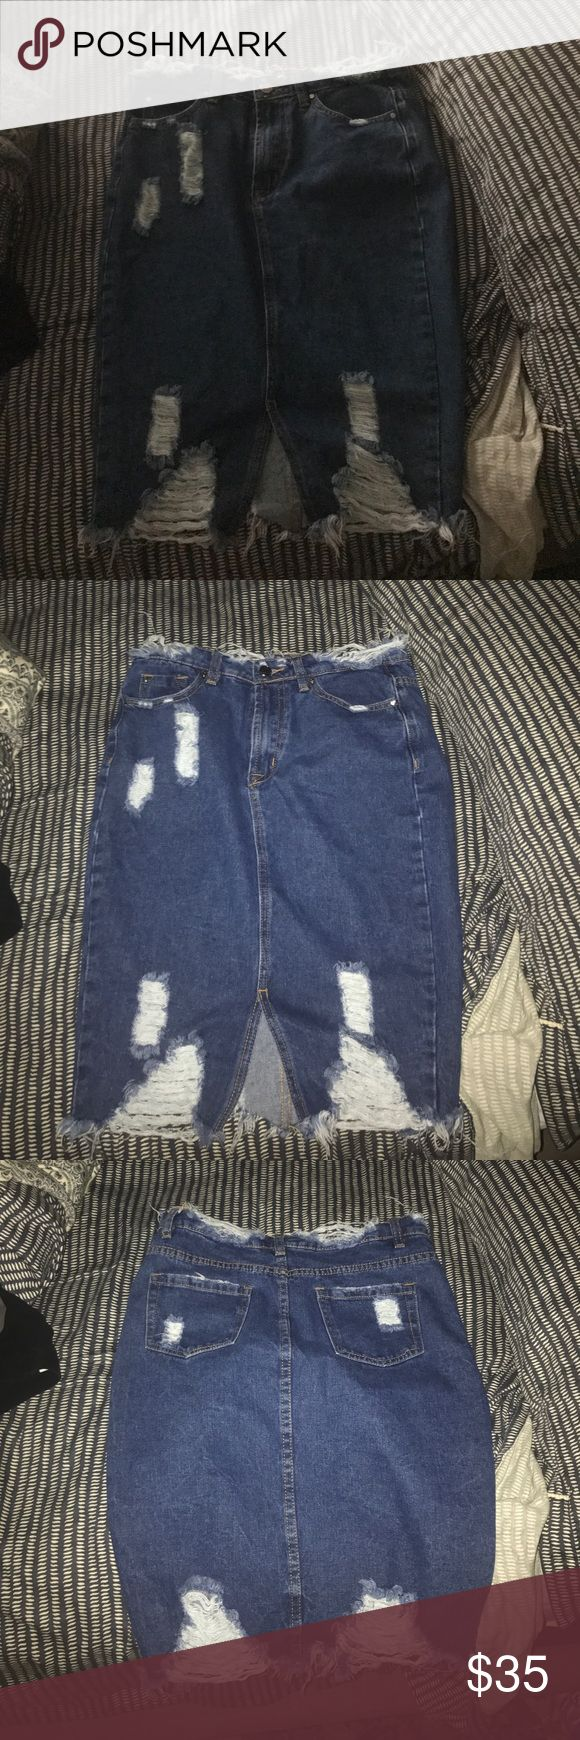 Misguided distressed jean skirt Super cute mid length skirt size 6 Skirts Midi